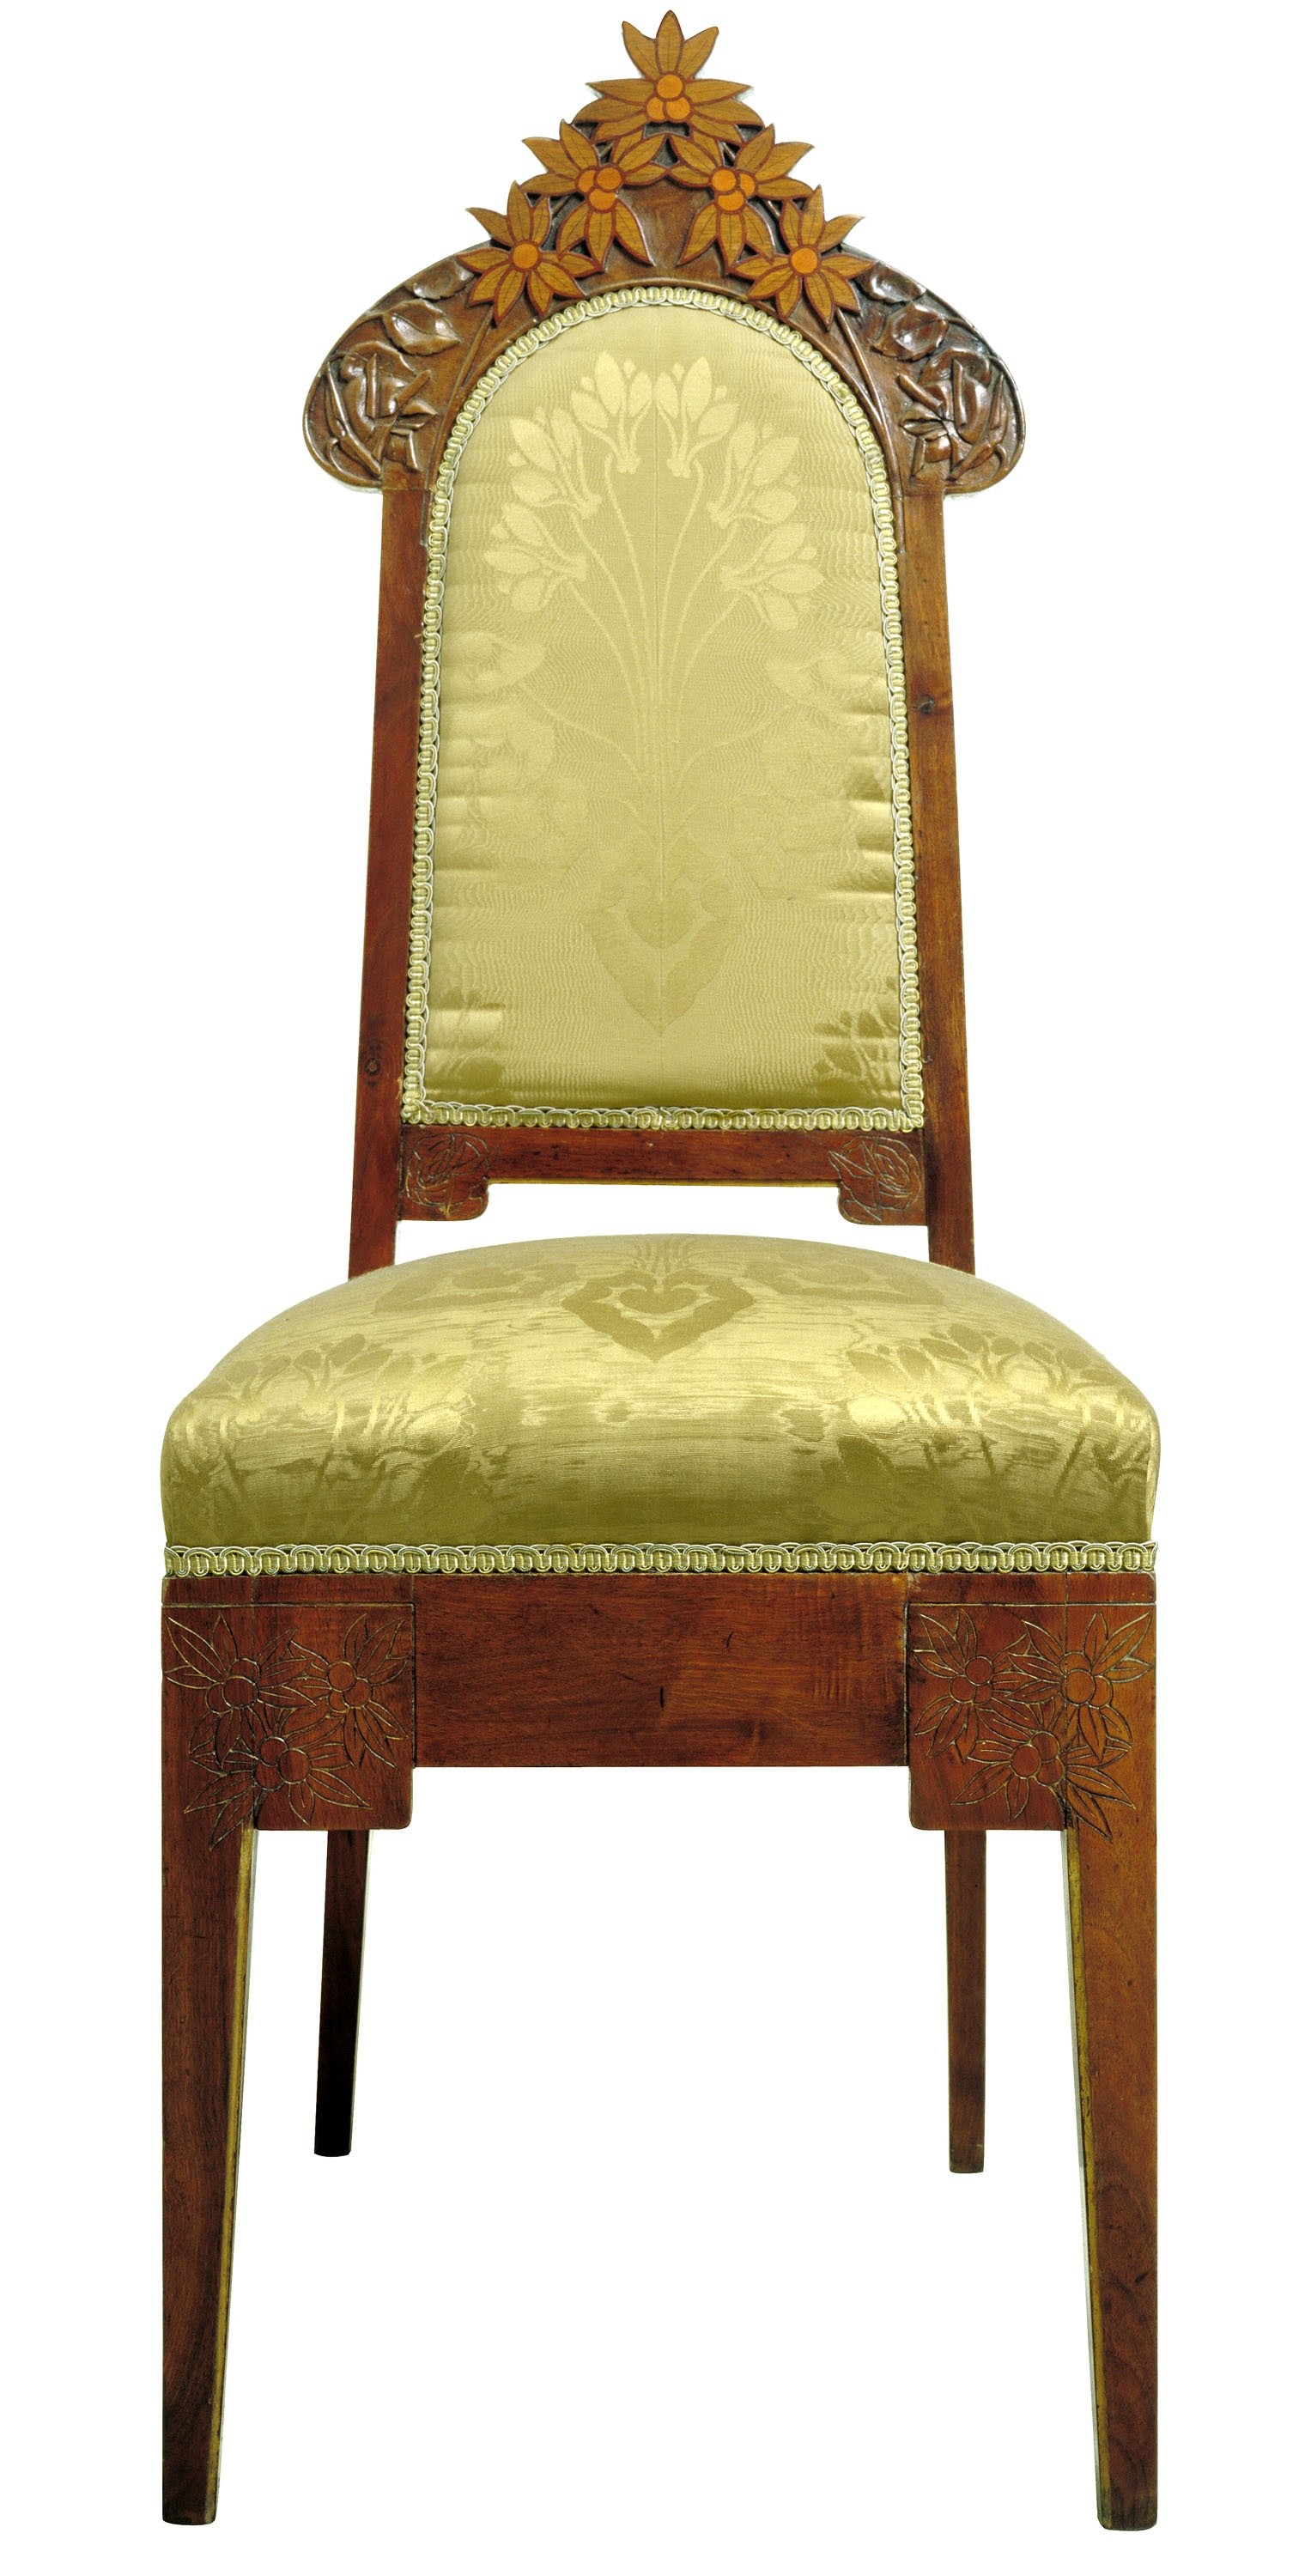 Gaspar Homar - Upright chair - Circa 1900-1904